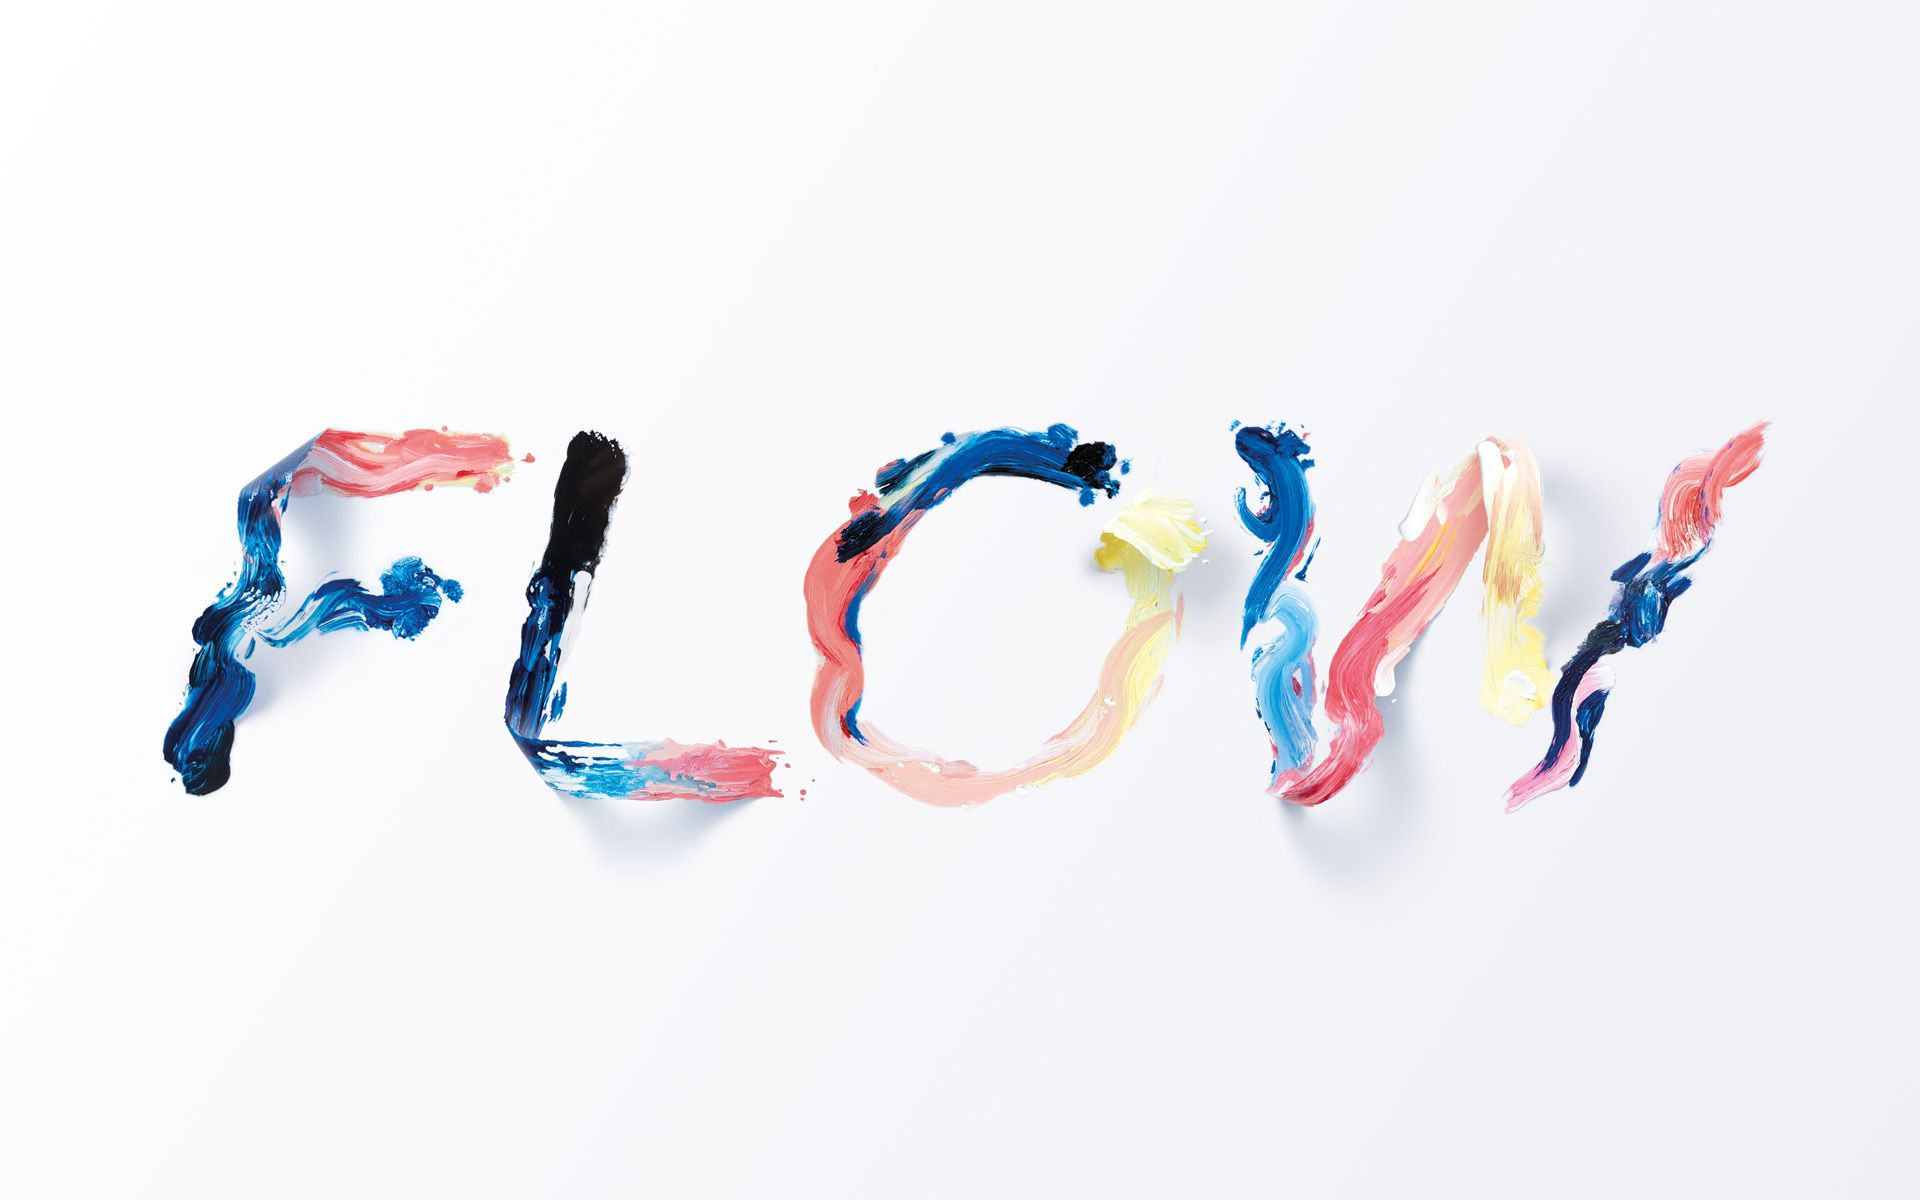 FLOW / Sawdust (UK) is the award-winning creative partnership of Rob Gonzalez and Jonathan Quainton. Focusing on bespoke typography, image-making a...